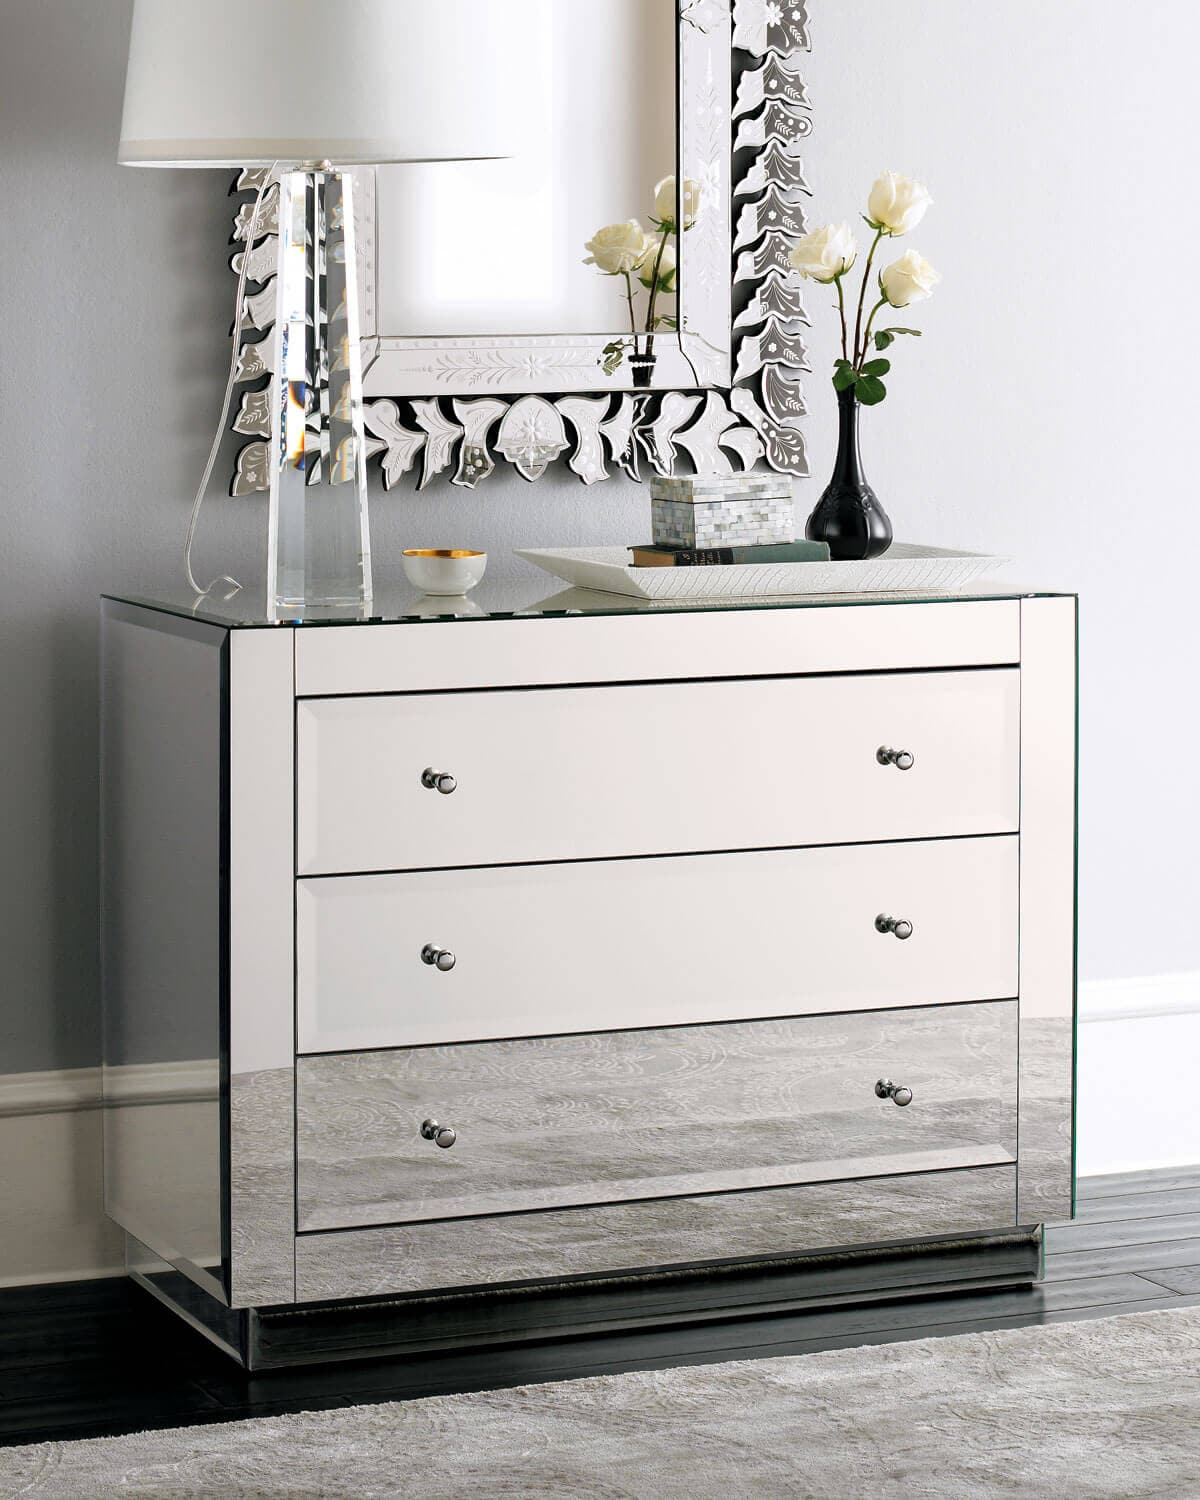 Stunning Mirrored Dresser